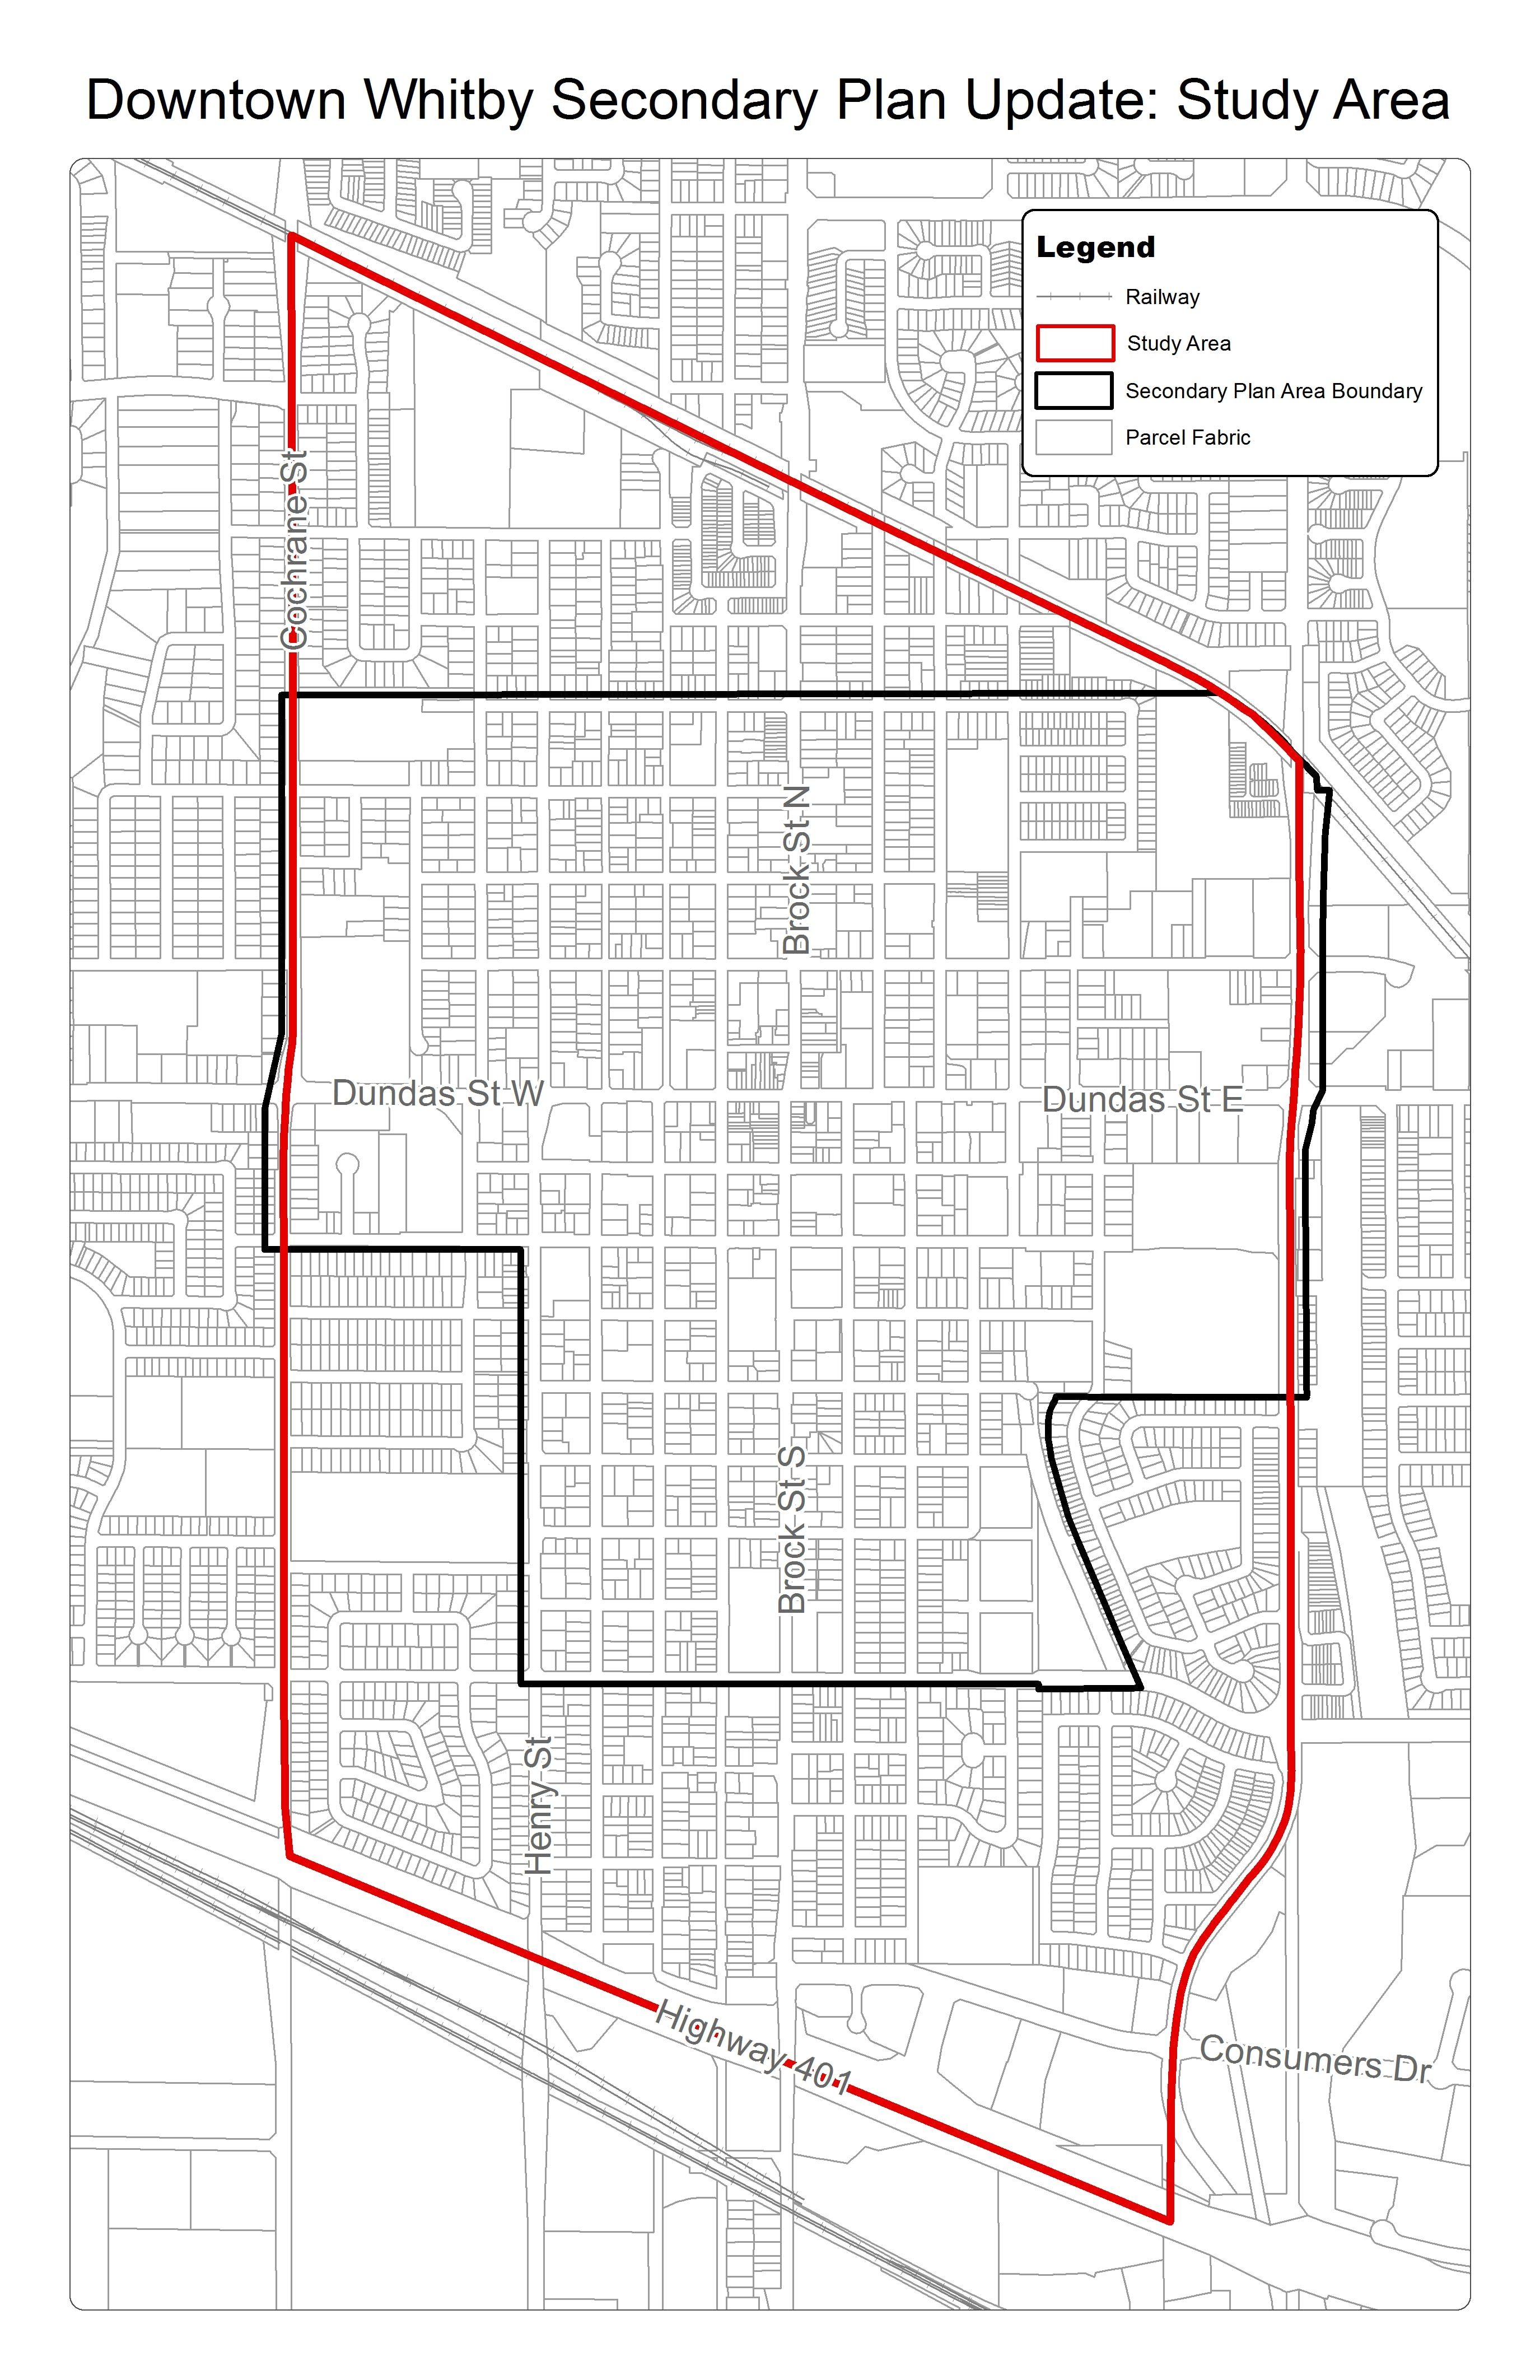 The study area for the Secondary Plan Update is bound by the Canadian Pacific Rail line to the north, Garden Street to the east, Highway 401 to the south and Cochrane Street to the west.